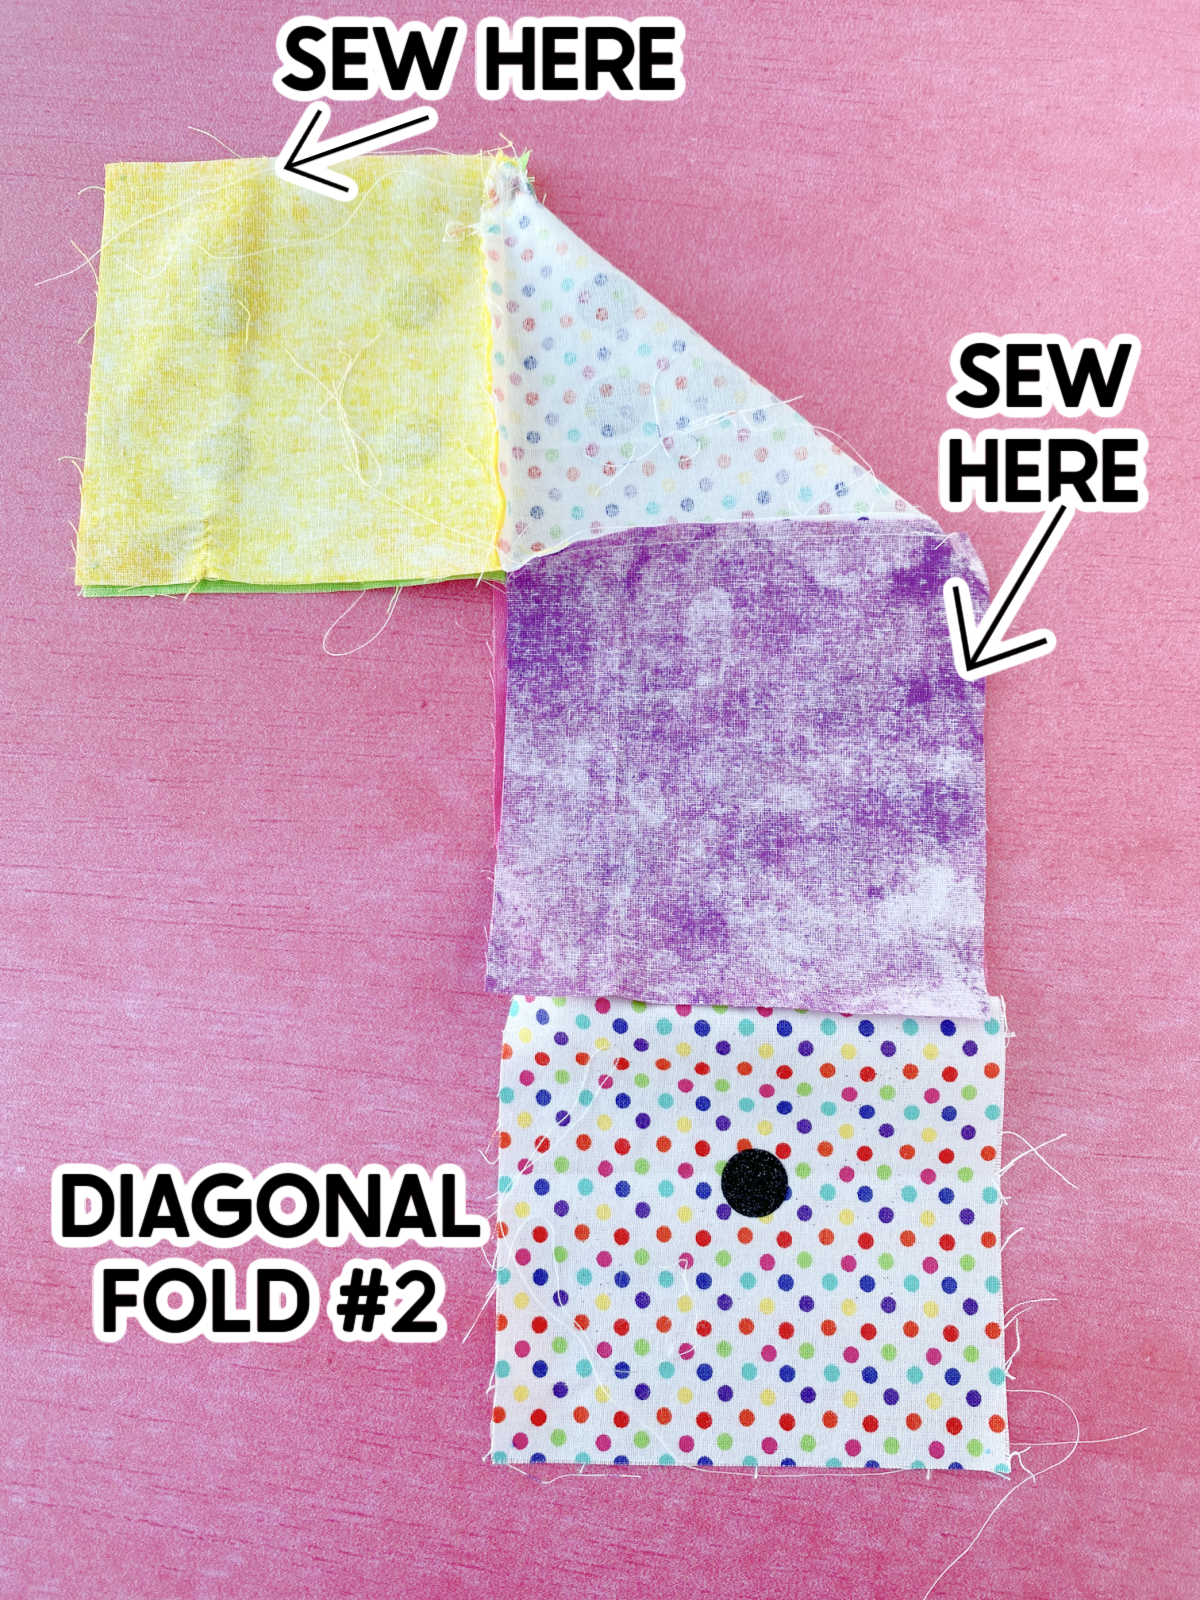 diagram showing where to sew a DIY dice